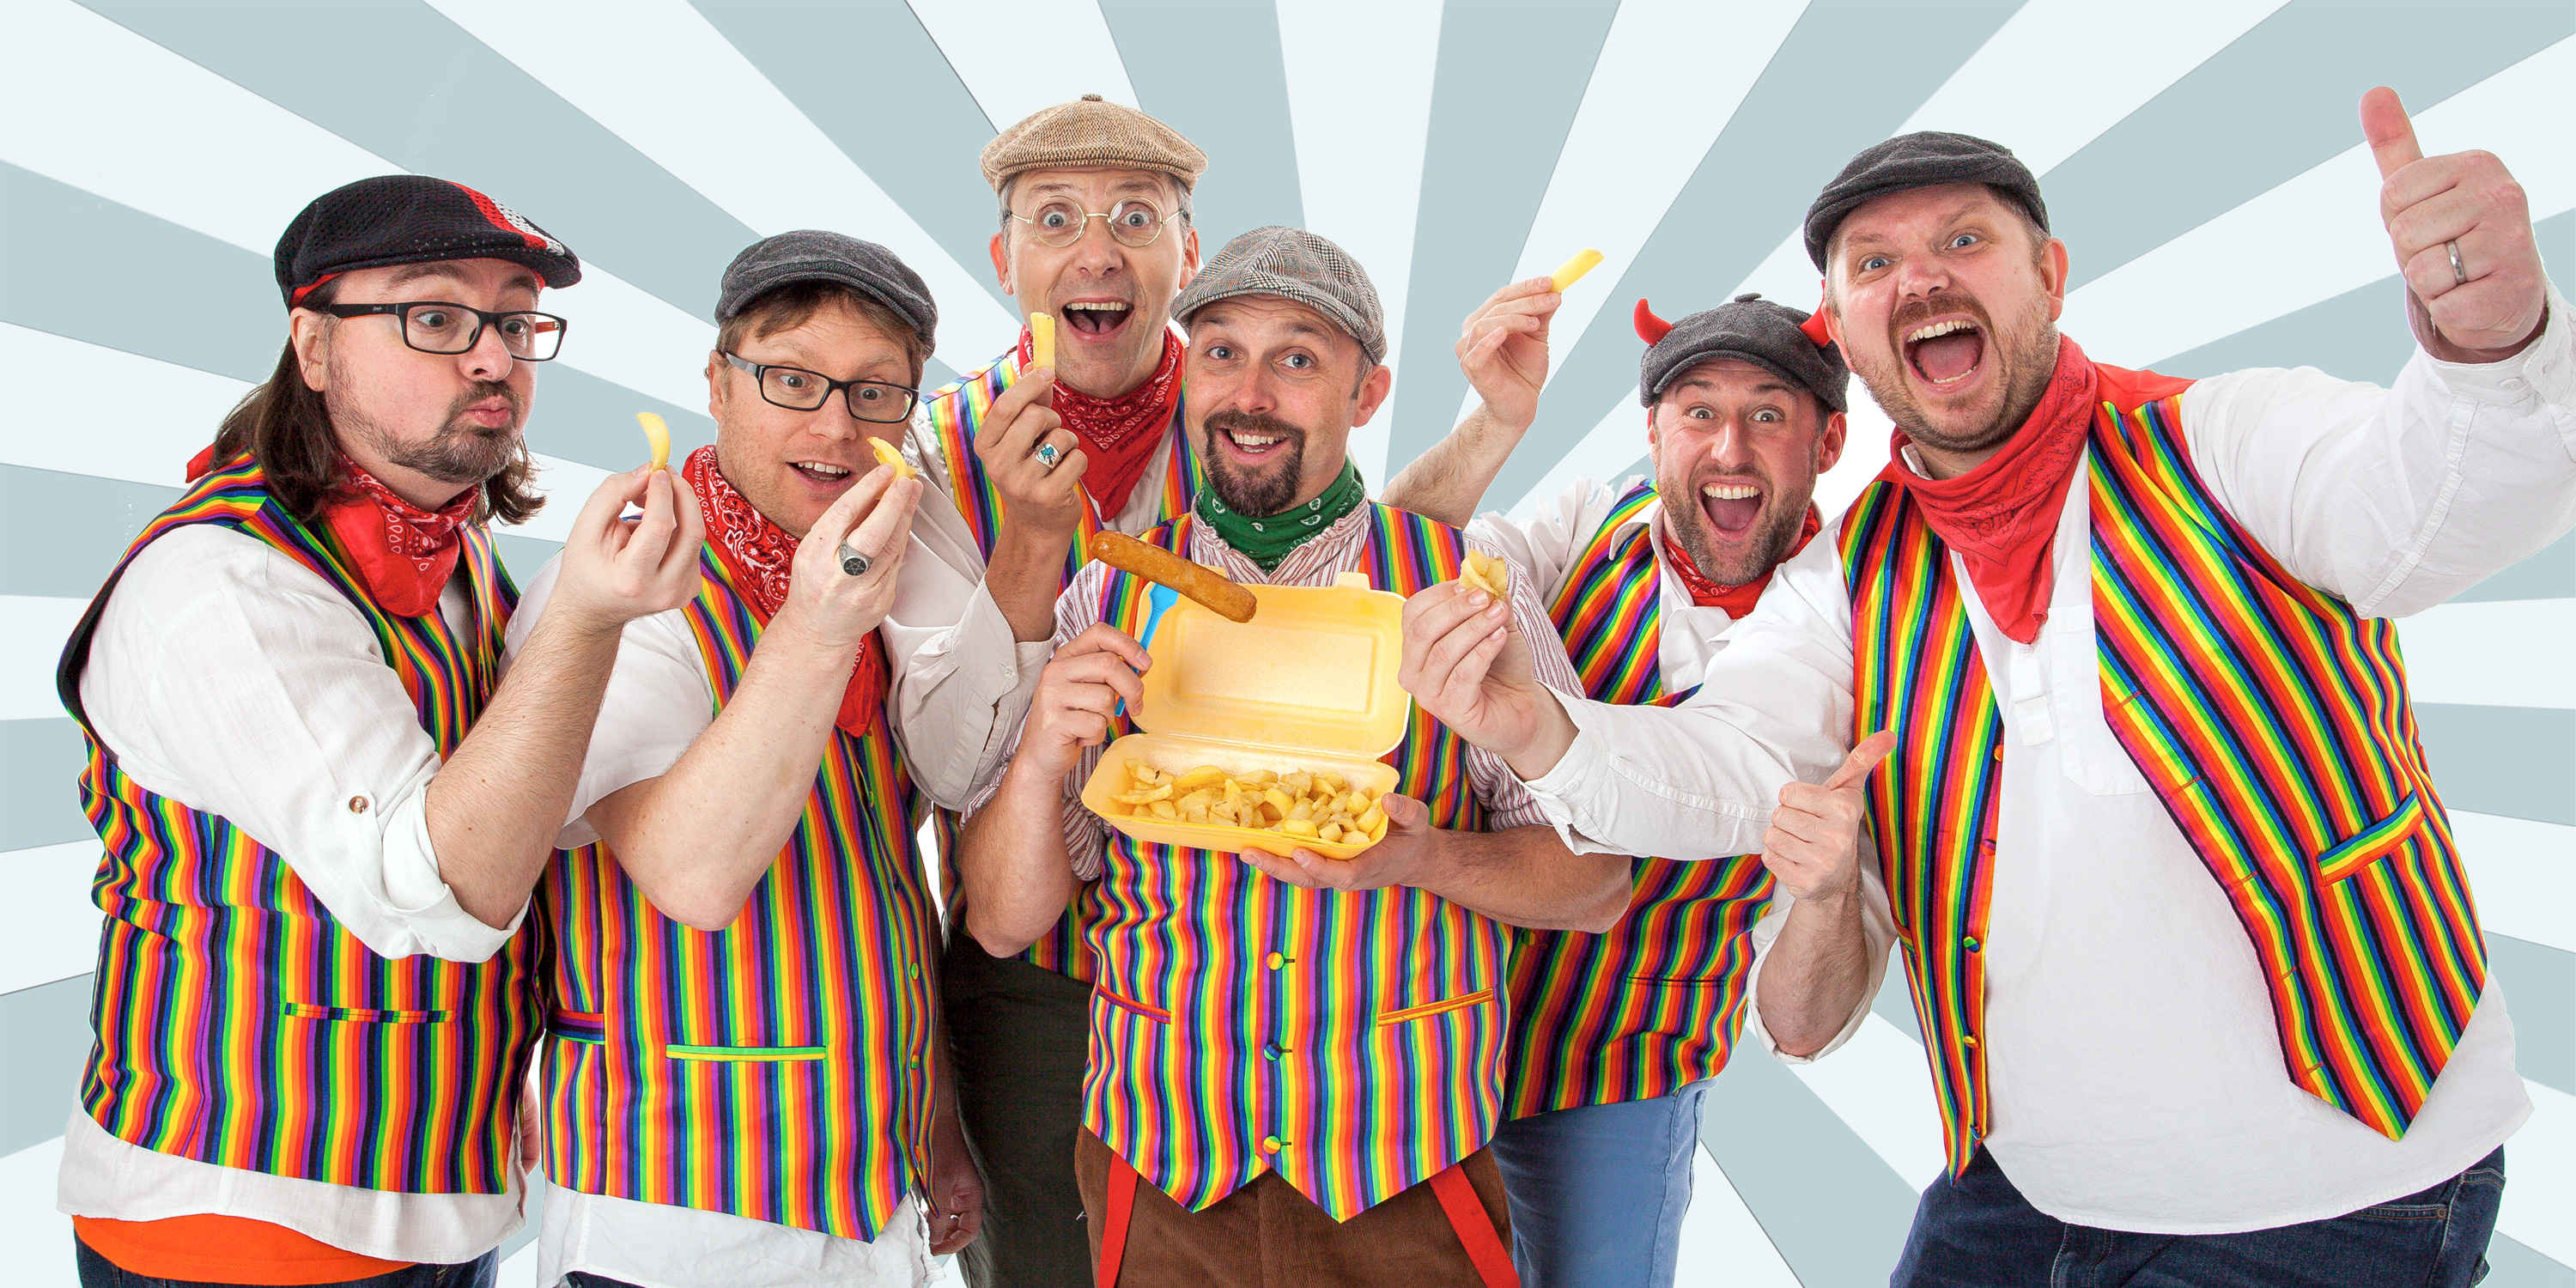 The Lancashire Hotpots Chips & Giggles Tour promotion